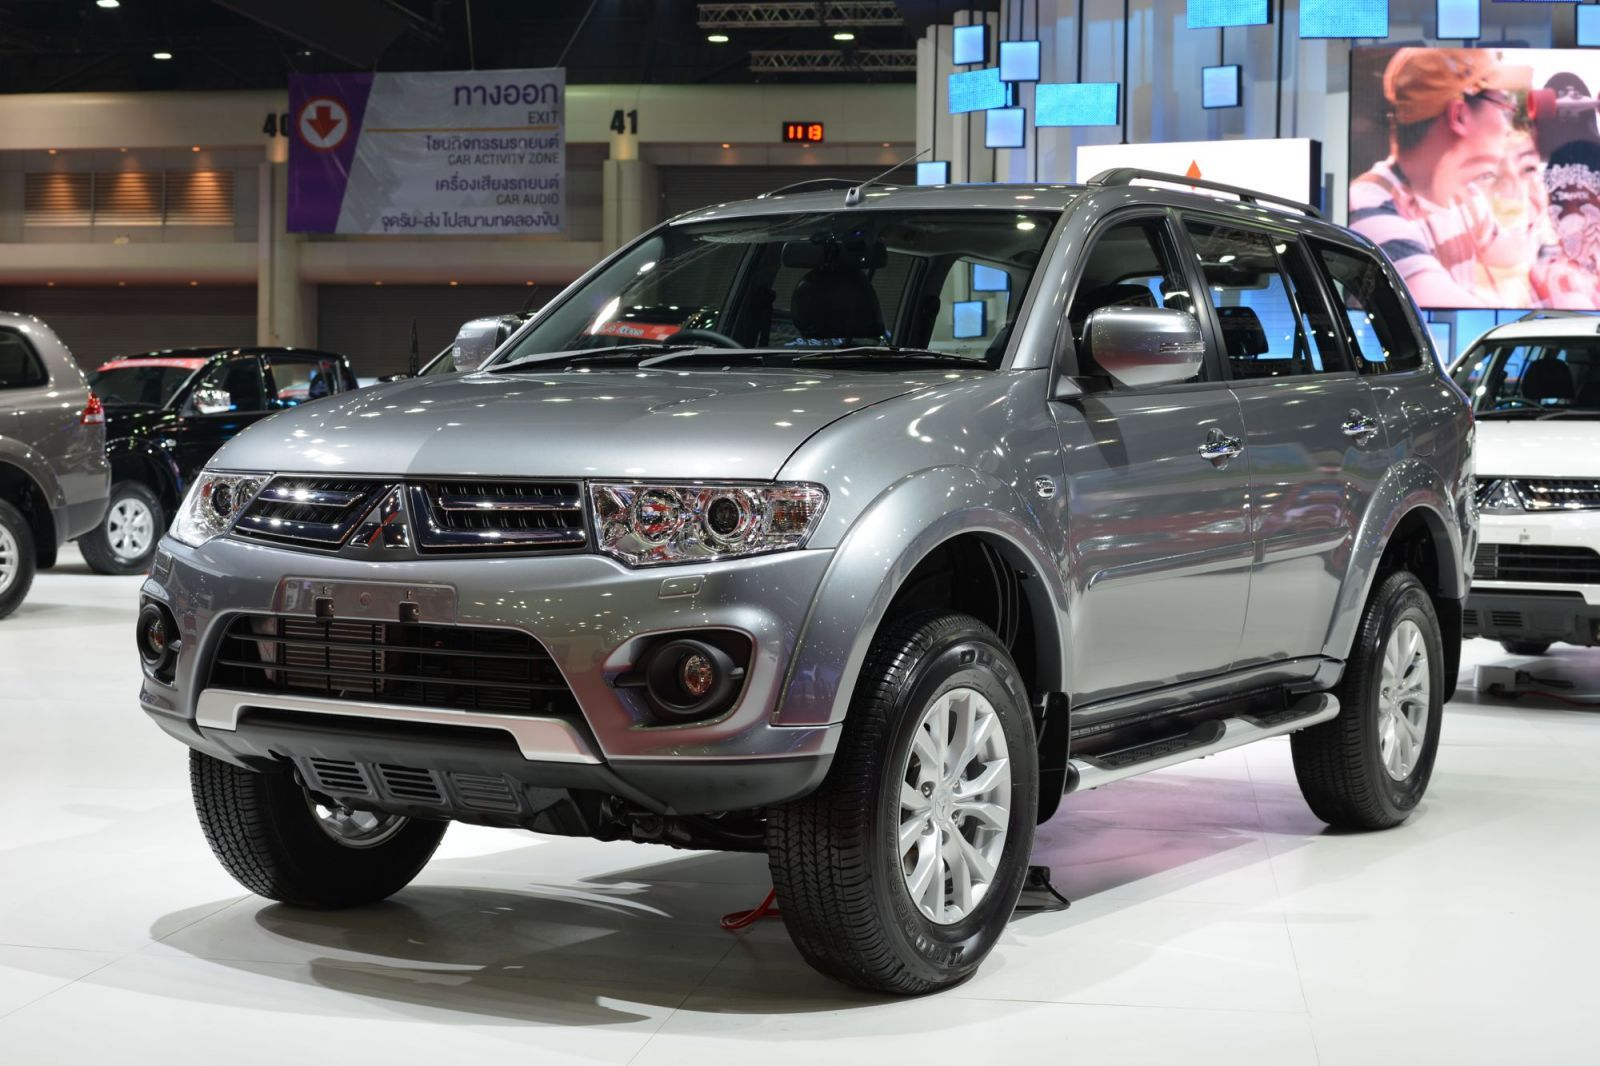 the montero sport inherits the attributes of the luxurious pajero